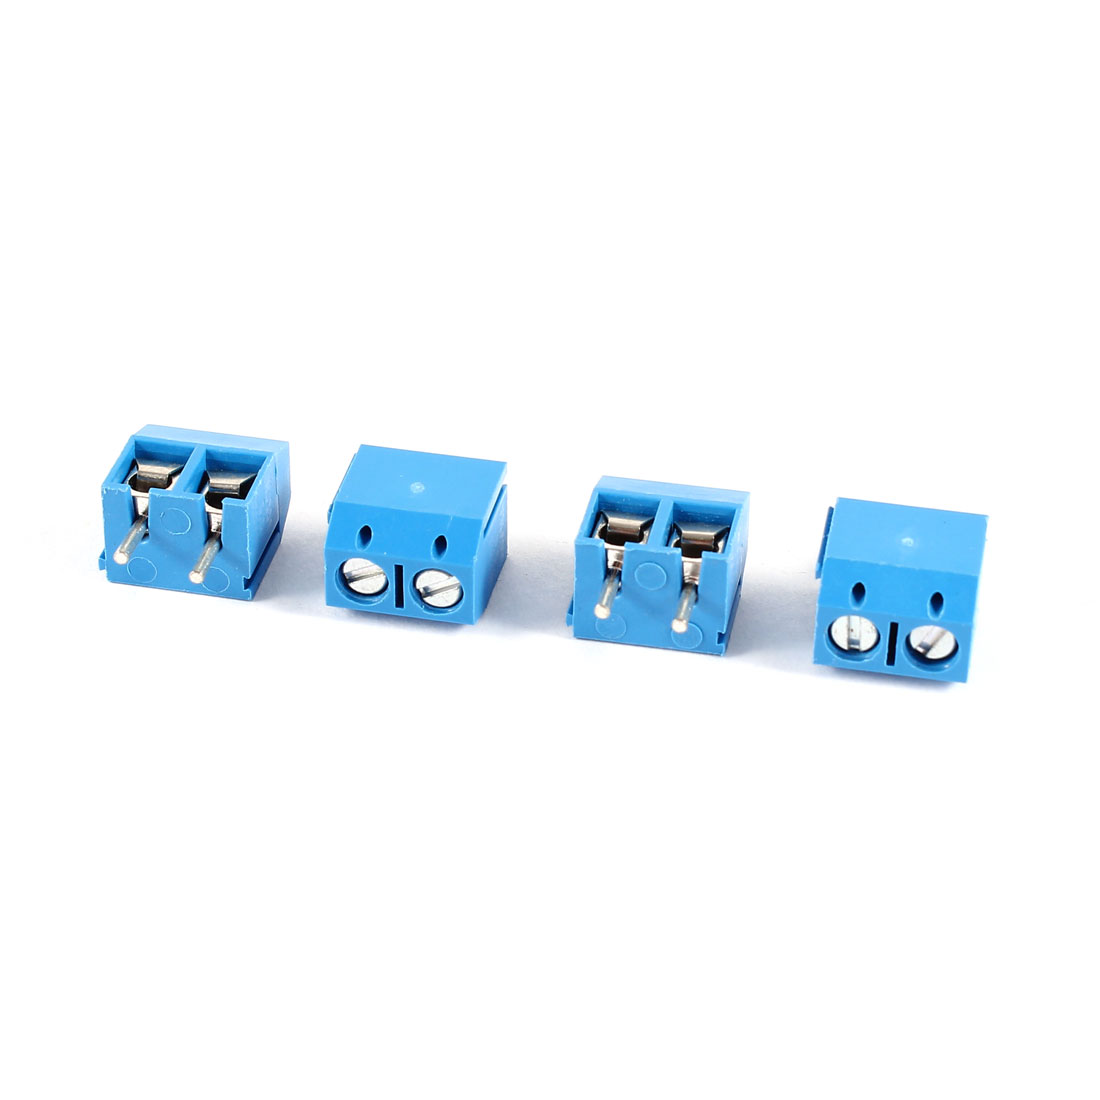 4 Pcs 2 Position Plastic Shell PCB Screw Terminal Block Blue 300V 16A